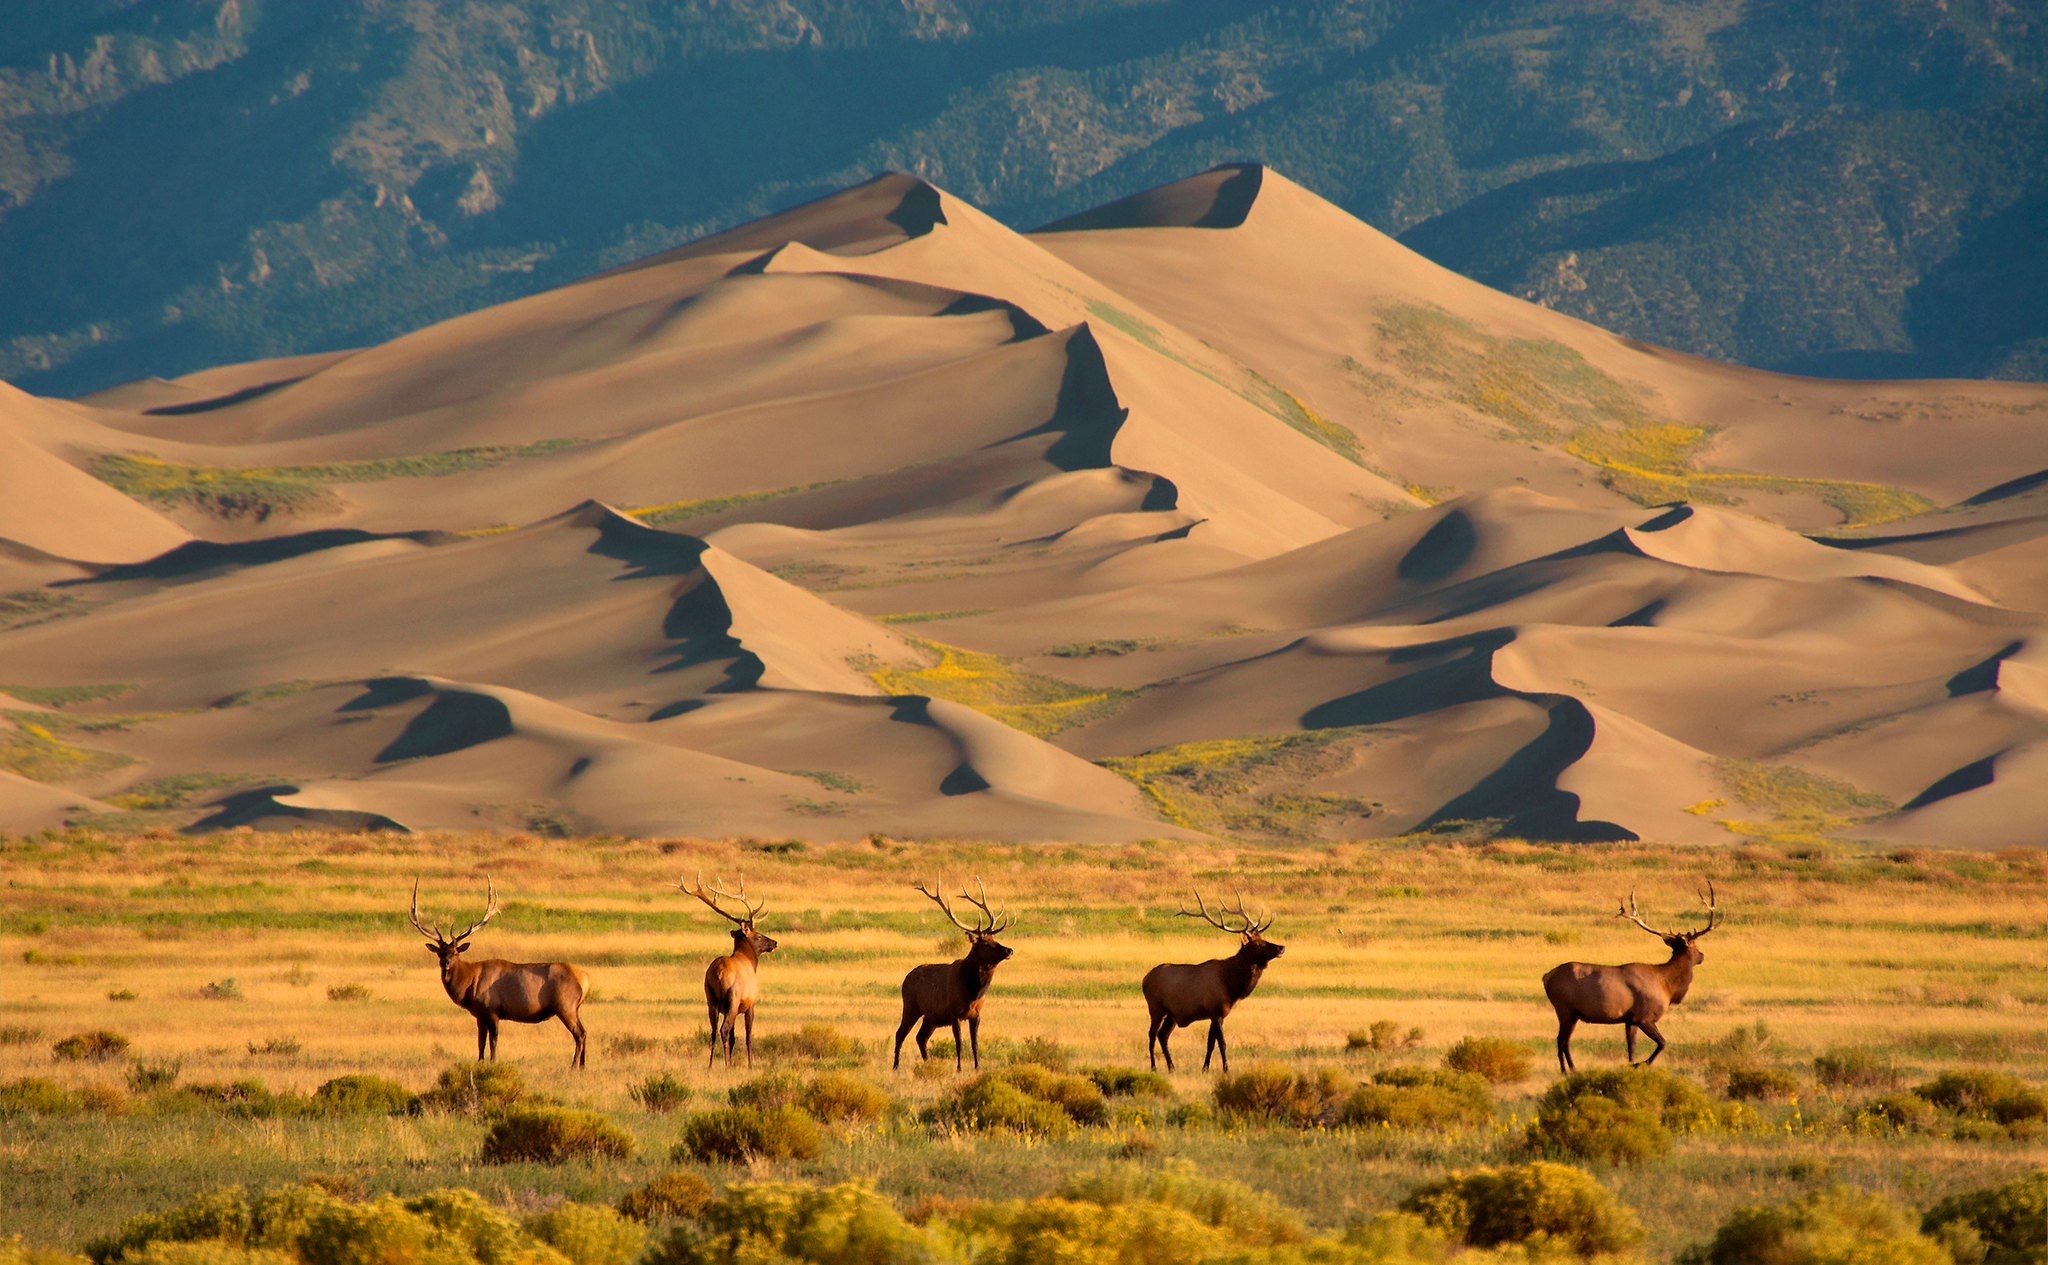 U.S. House panel divides on party lines over how to better conserve public lands